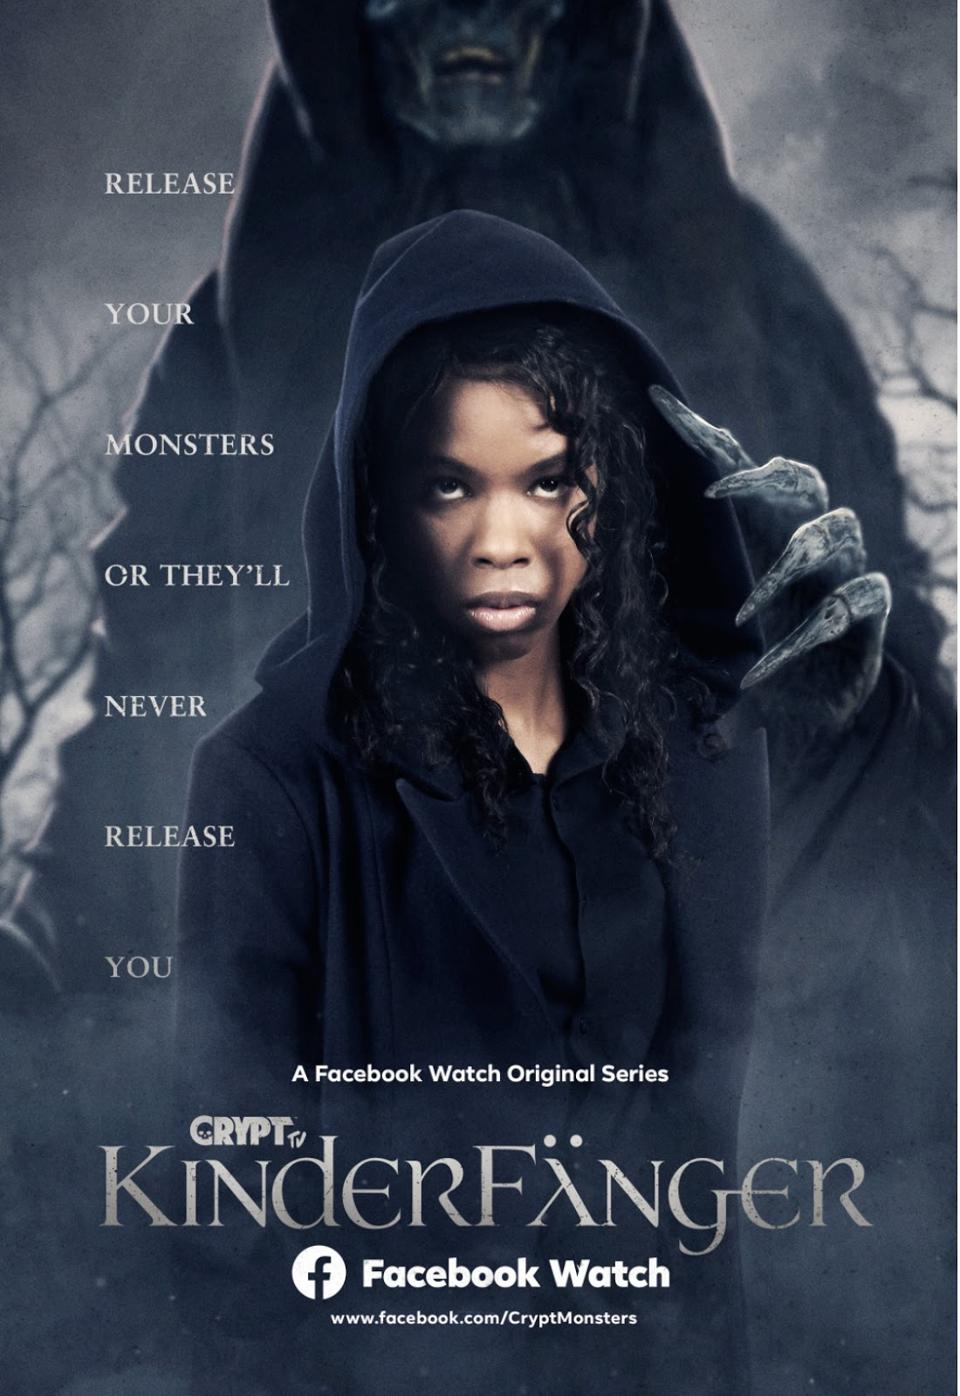 Movie poster for the show Kinderfänger featuring a Black woman with a monster behind her.